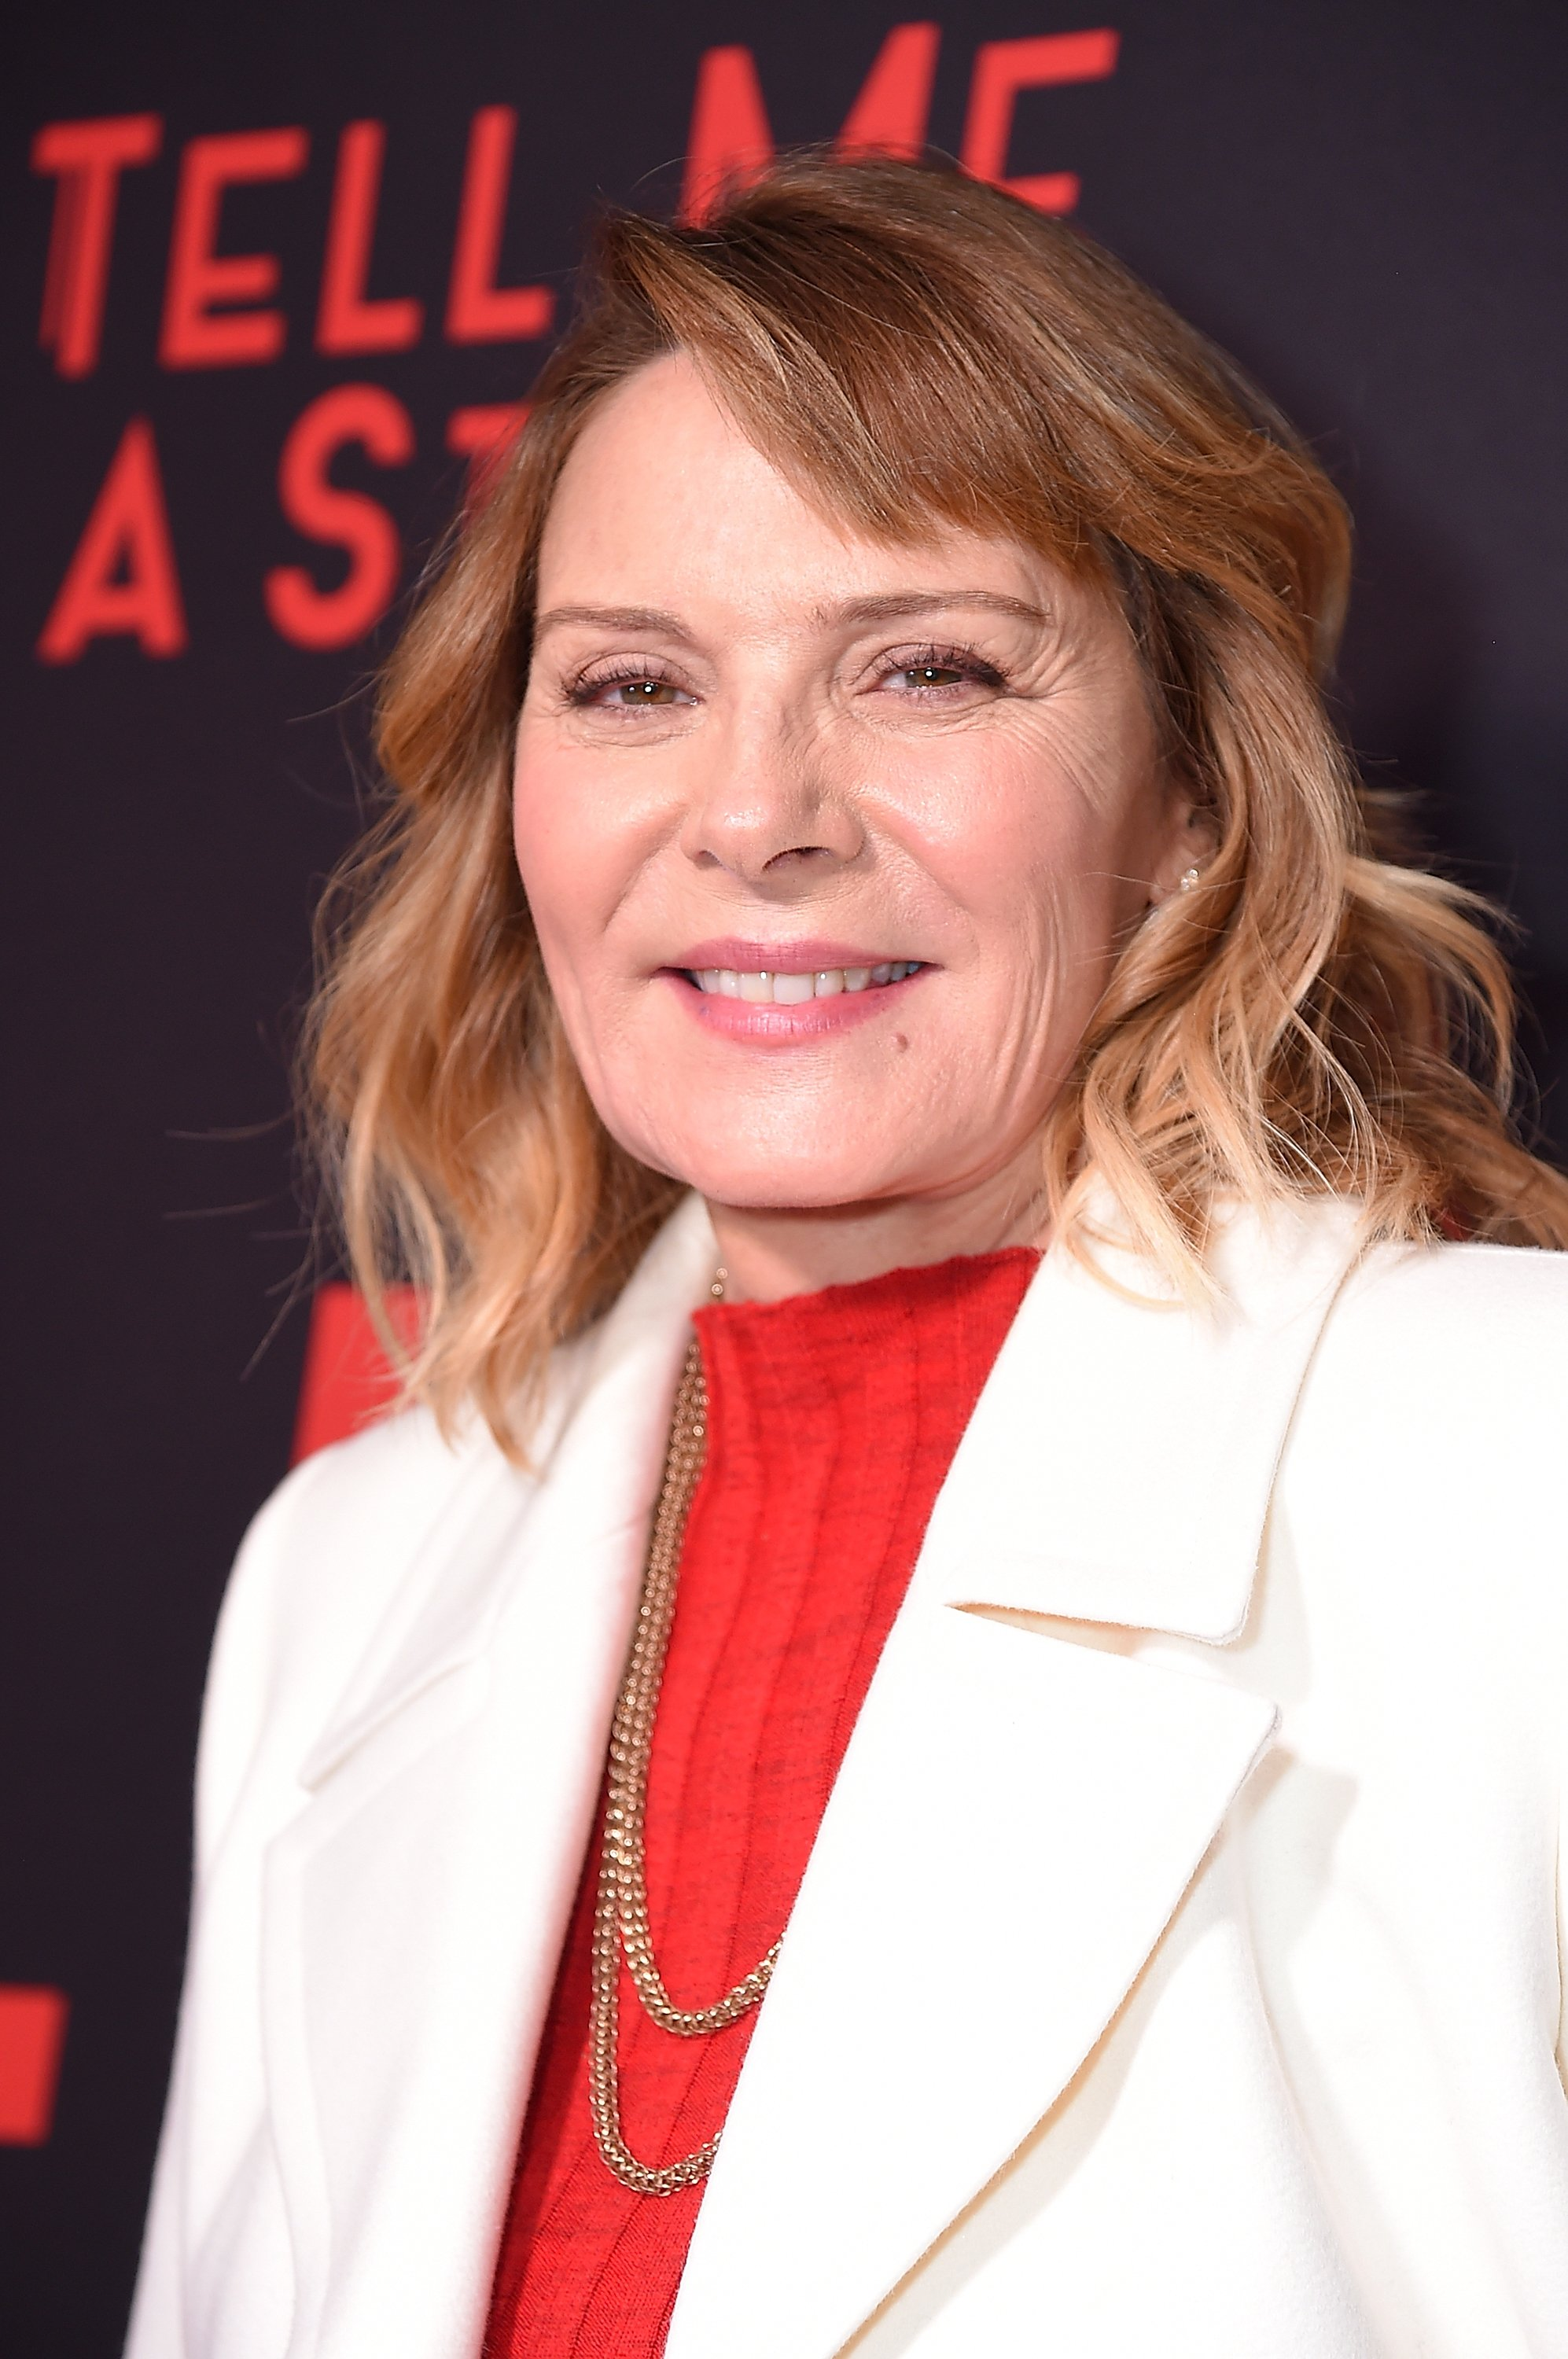 """Kim Cattrall attends the New York premiere of CBS All Access' """"Tell Me A Story"""" at Metrograph on October 23, 2018, in New York City.   Source: Getty Images."""